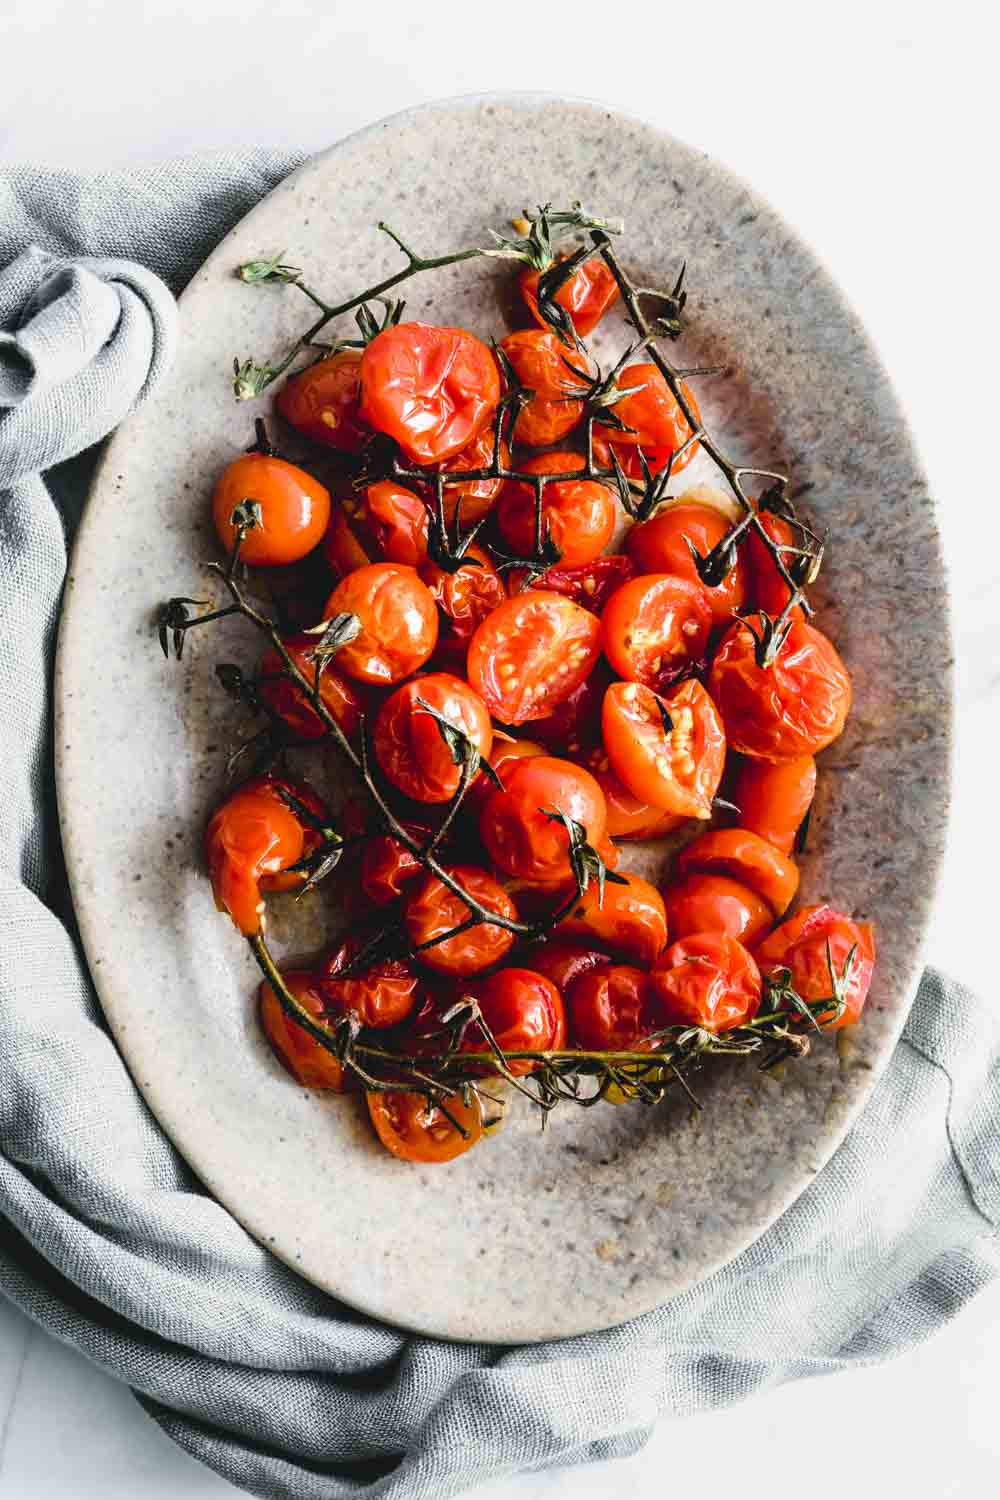 charred tomatoes in an oval plate with a light green napkin next to it on a white backdrop